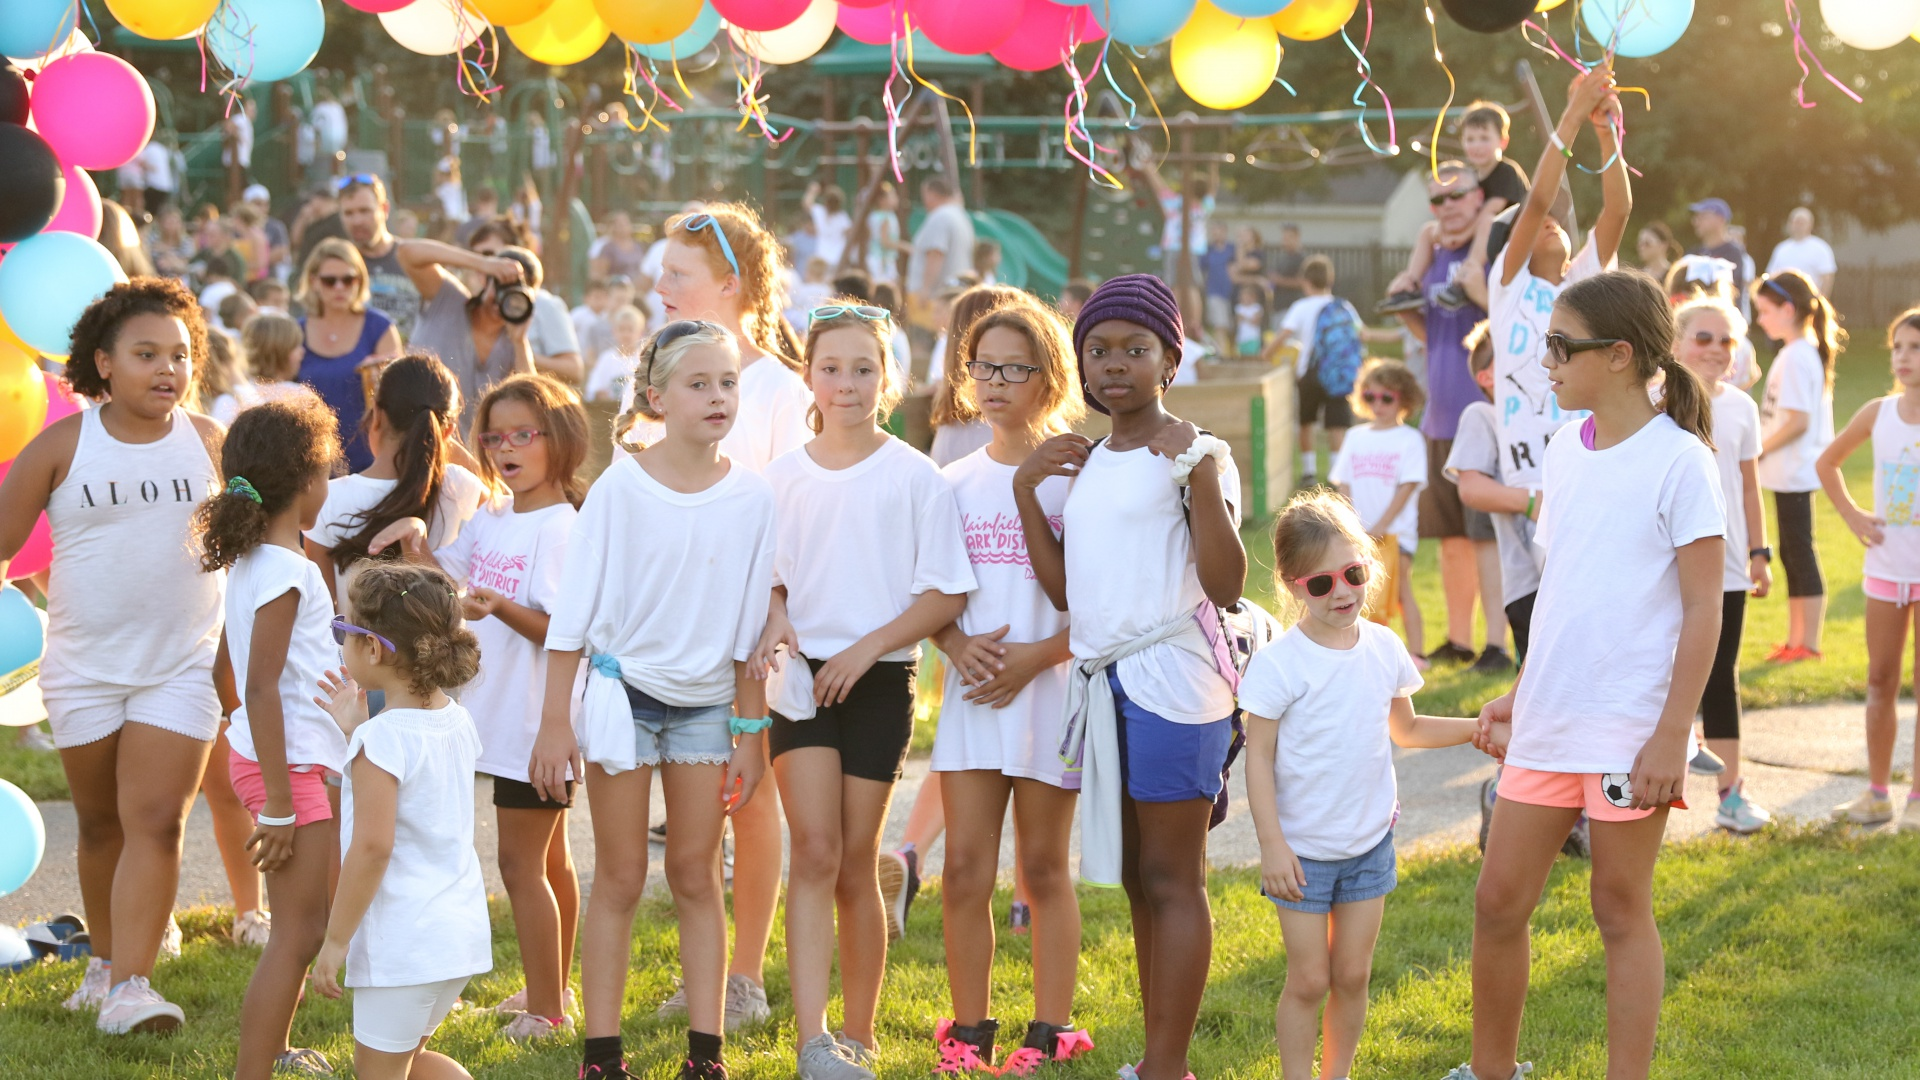 slidshow image - Time for the Color Run -